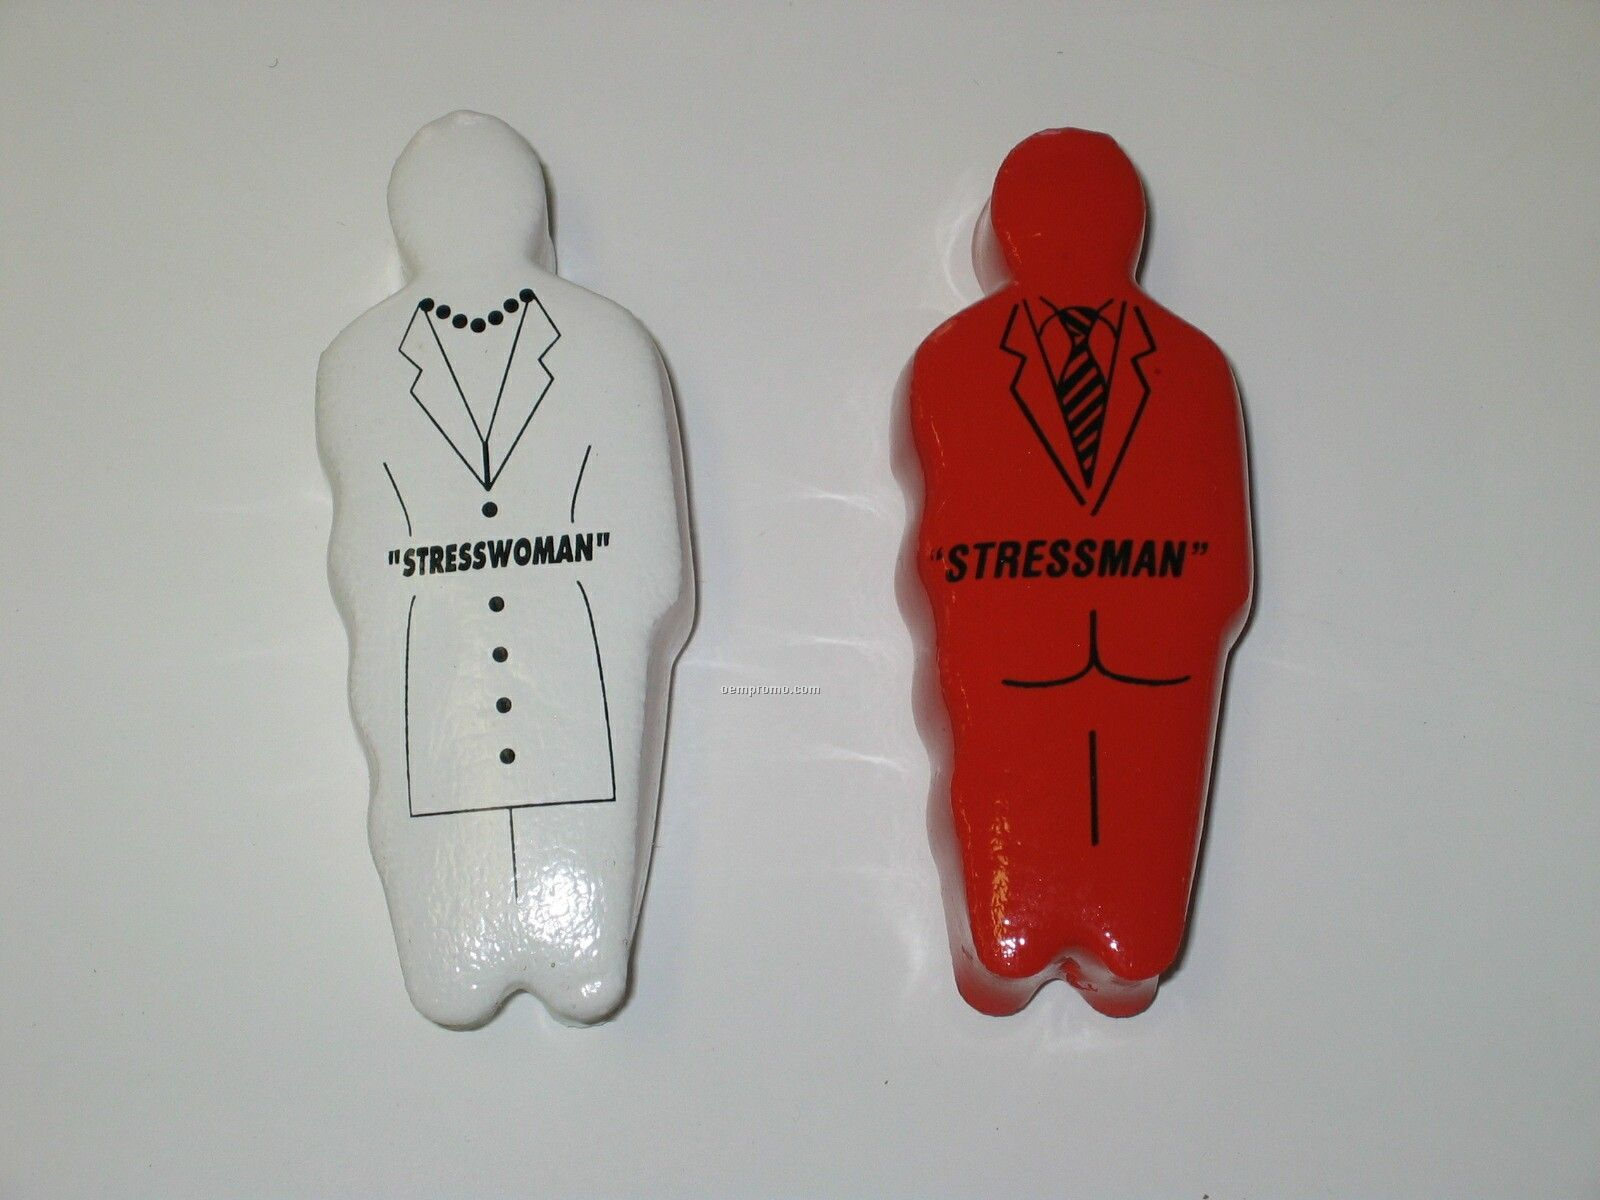 Stressman / Stress Woman Hand Exerciser